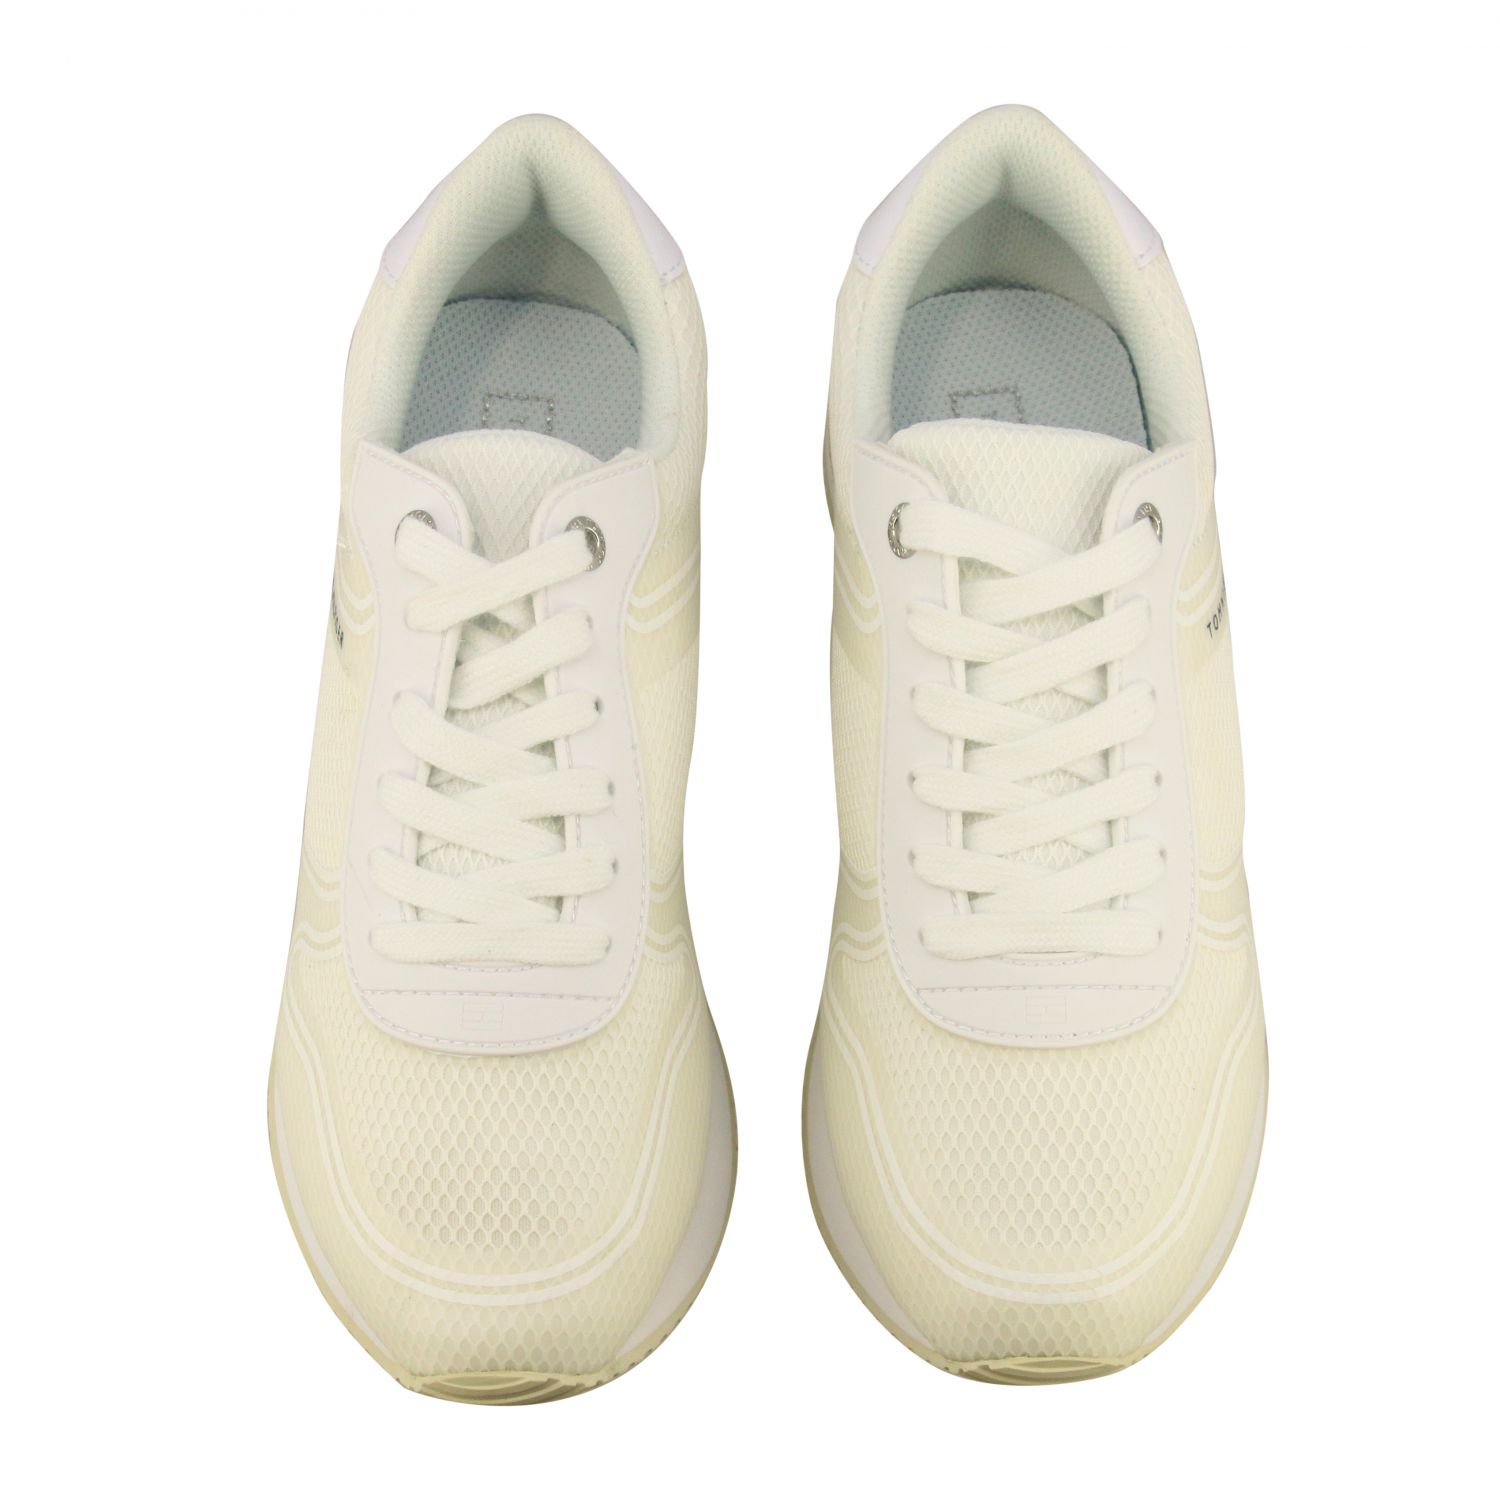 Sneakers donna Tommy Hilfiger bianco 3